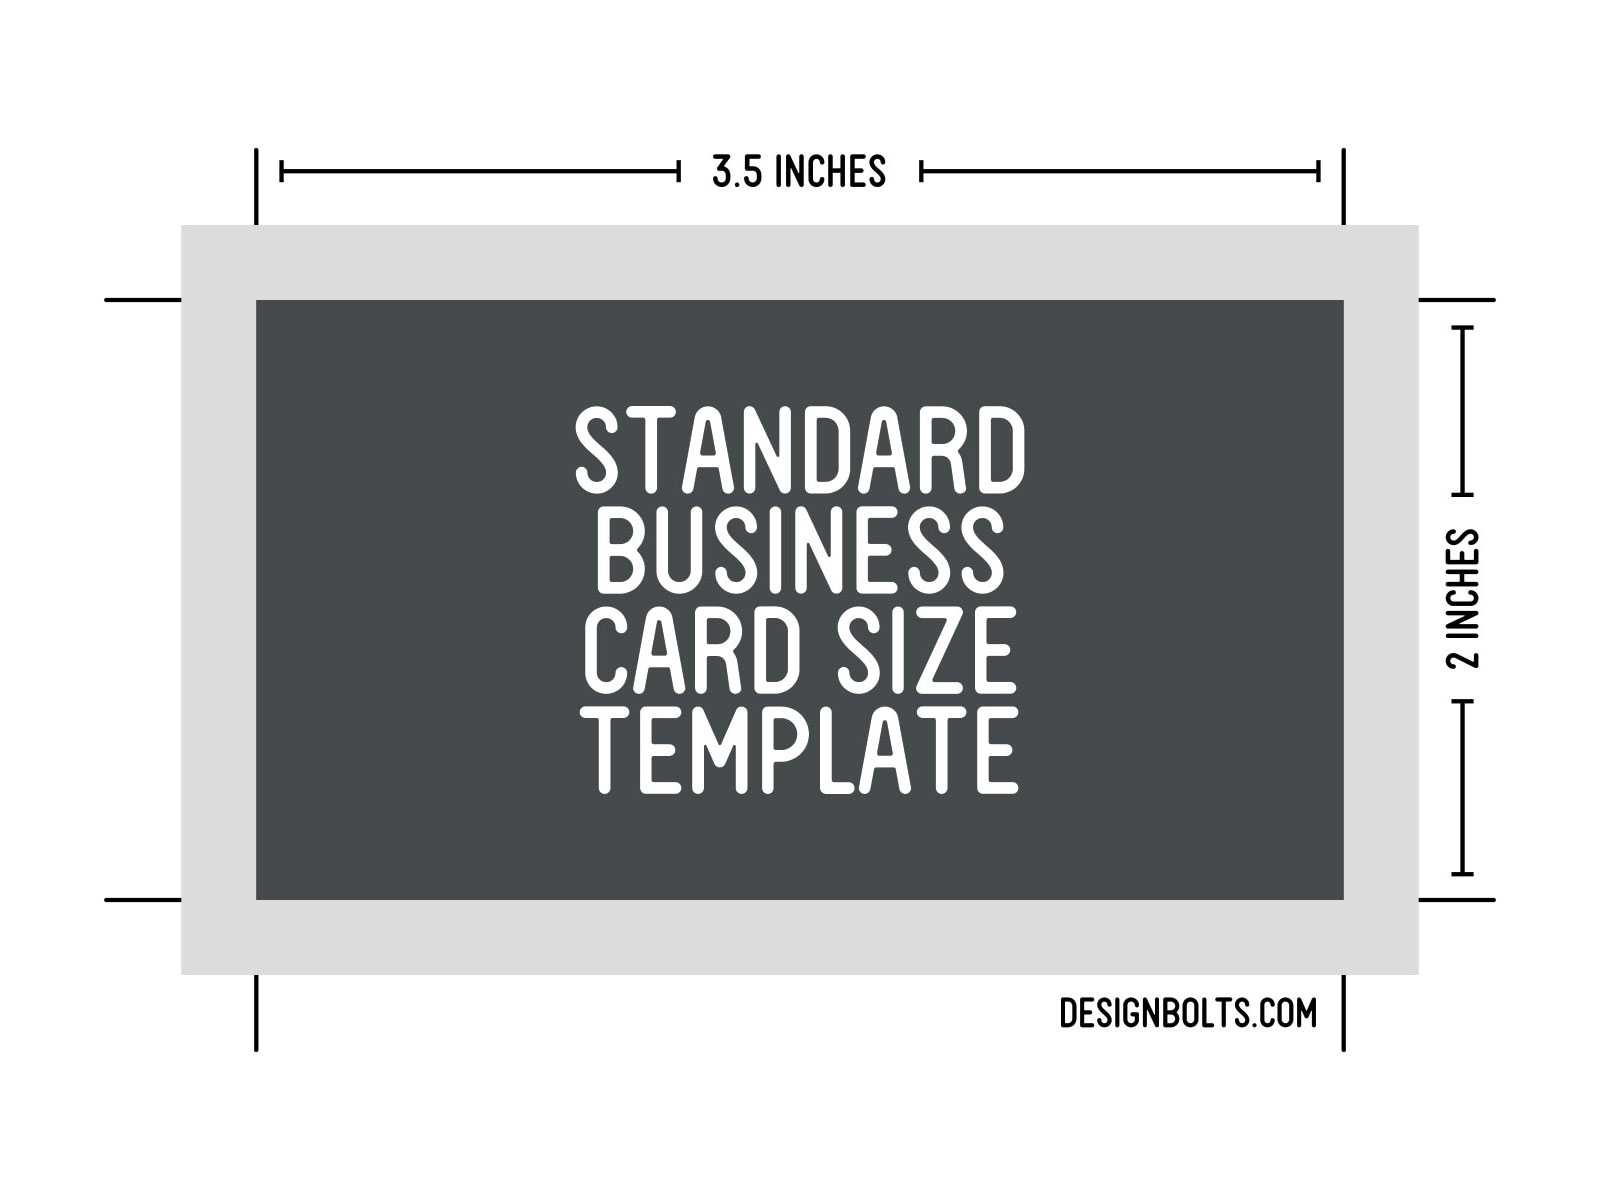 Size Of Business Card - Business Card Tips Regarding Business Card Size Photoshop Template